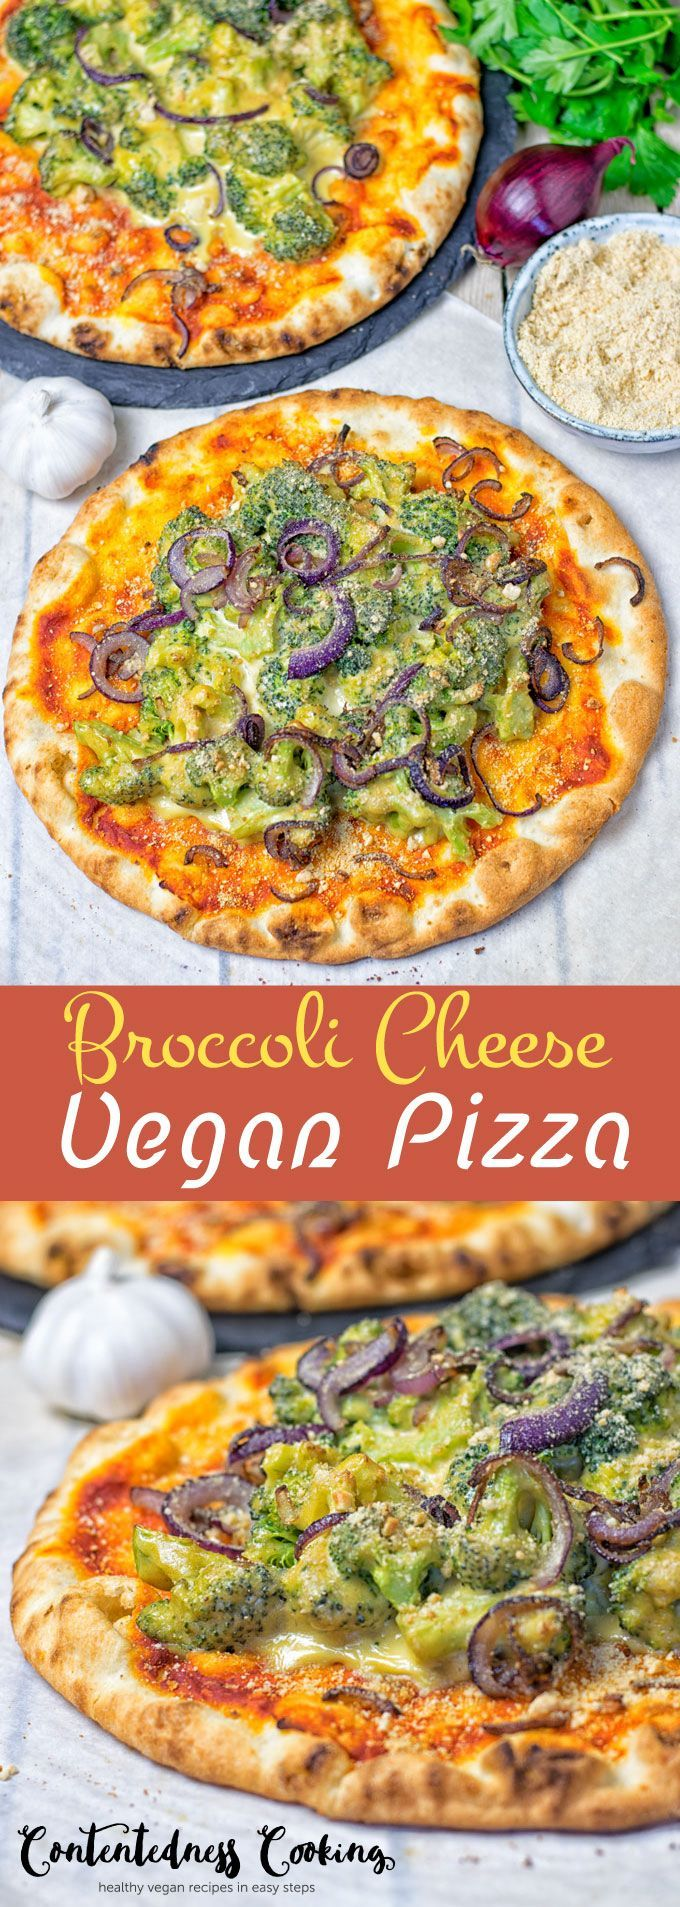 The best Broccoli Cheese Vegan Pizza is here. It's made from just 6 ingredients and in 2 easy steps. A satisfying, filling, and comforting plant based meal for lunch, dinner so delicious and gluten free.